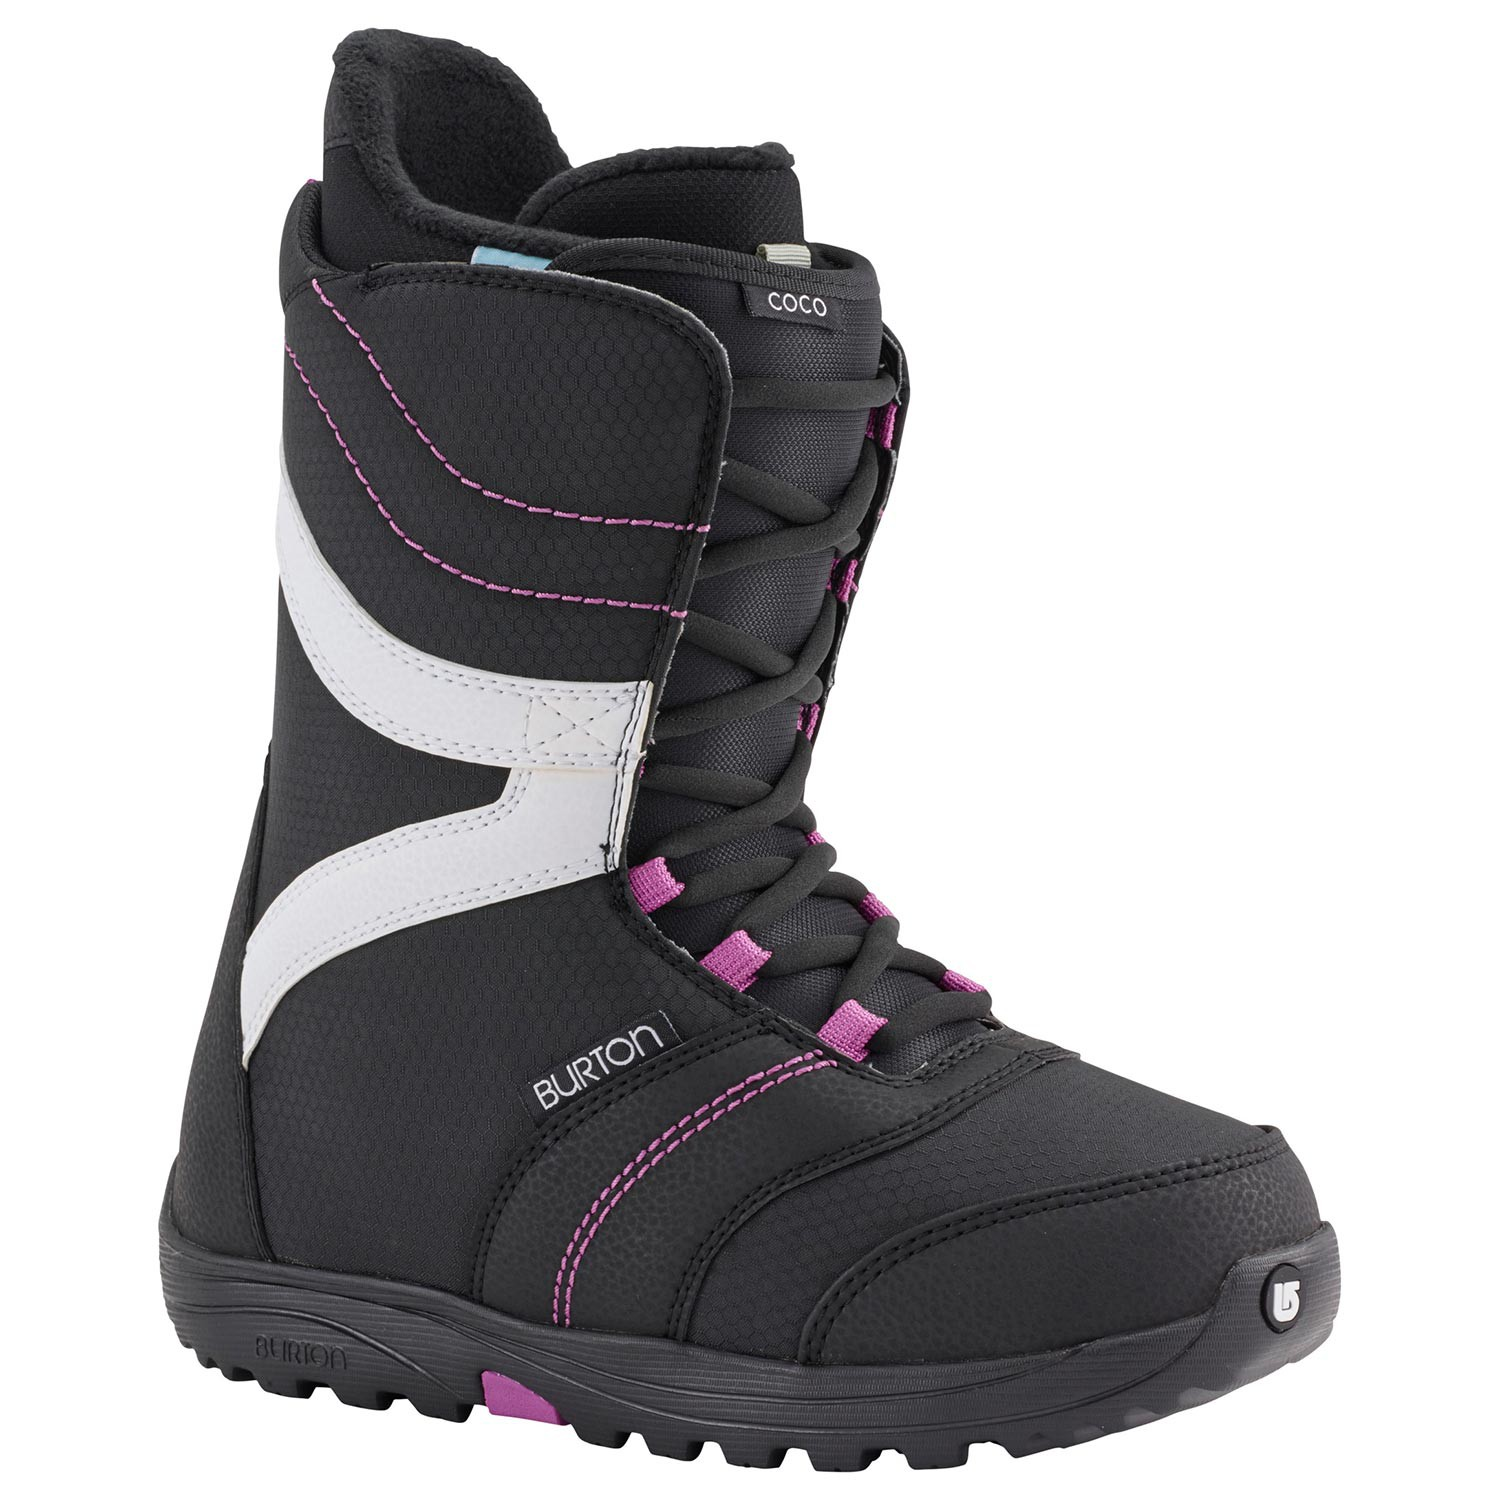 Boty Burton Coco black/purple